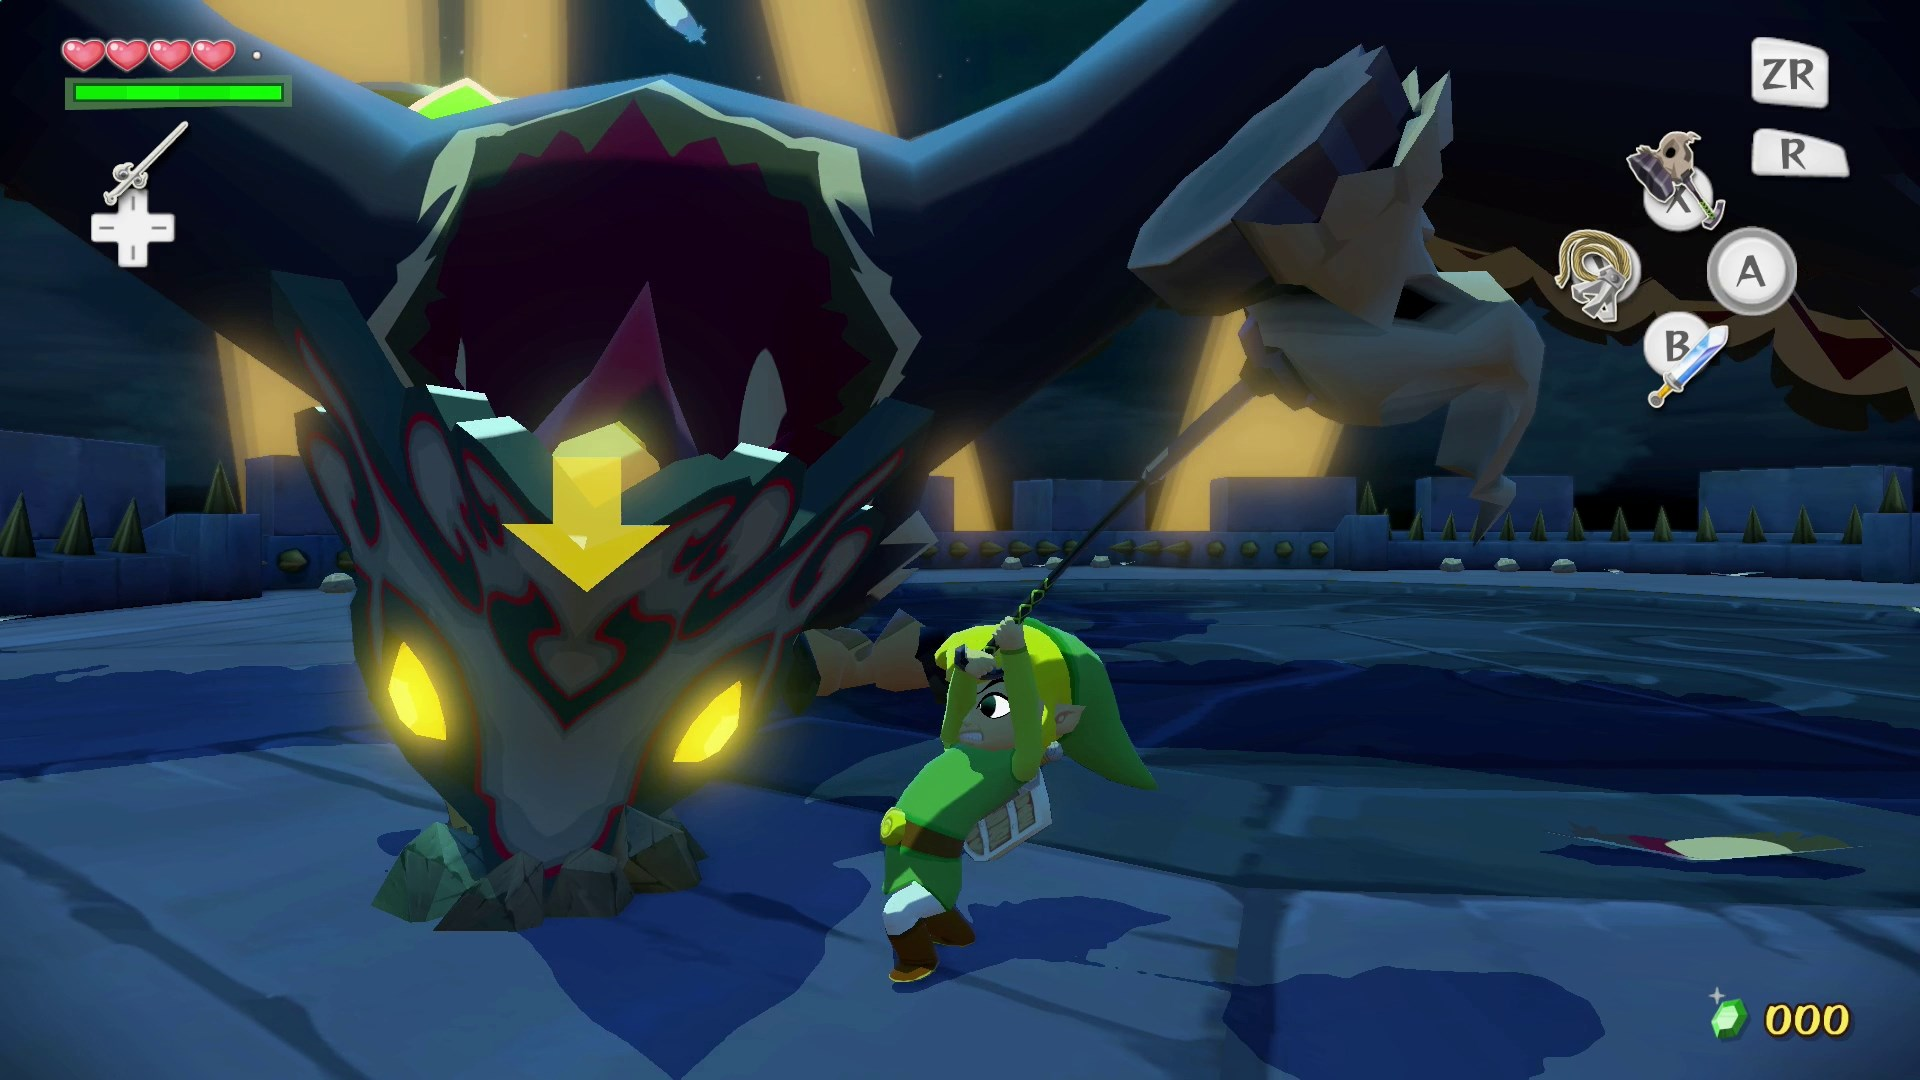 the-legend-of-zelda-the-wind-waker-hd-free-for-desktop-1920x1080-wallpaper-wp38010960